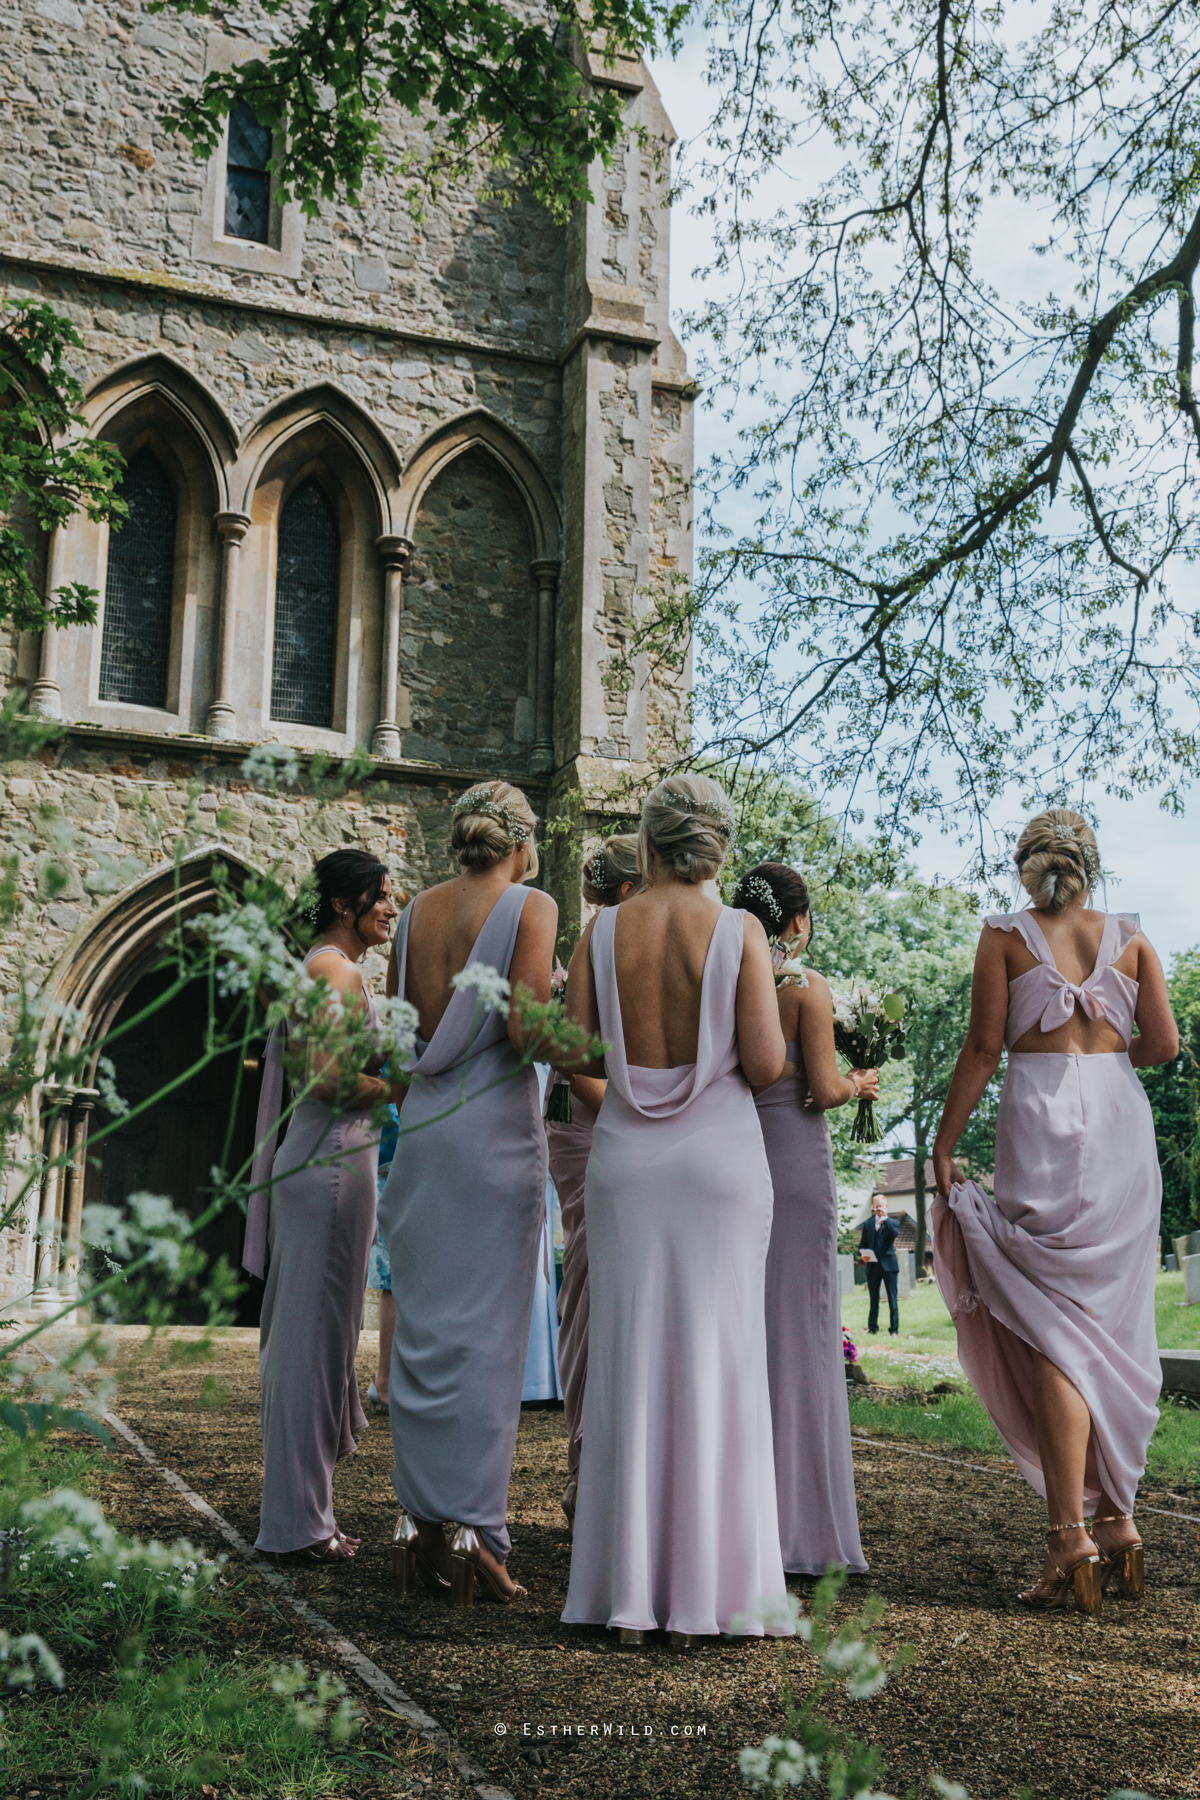 Wootton_Wedding_Copyright_Esther_Wild_Photographer_IMG_0763.jpg